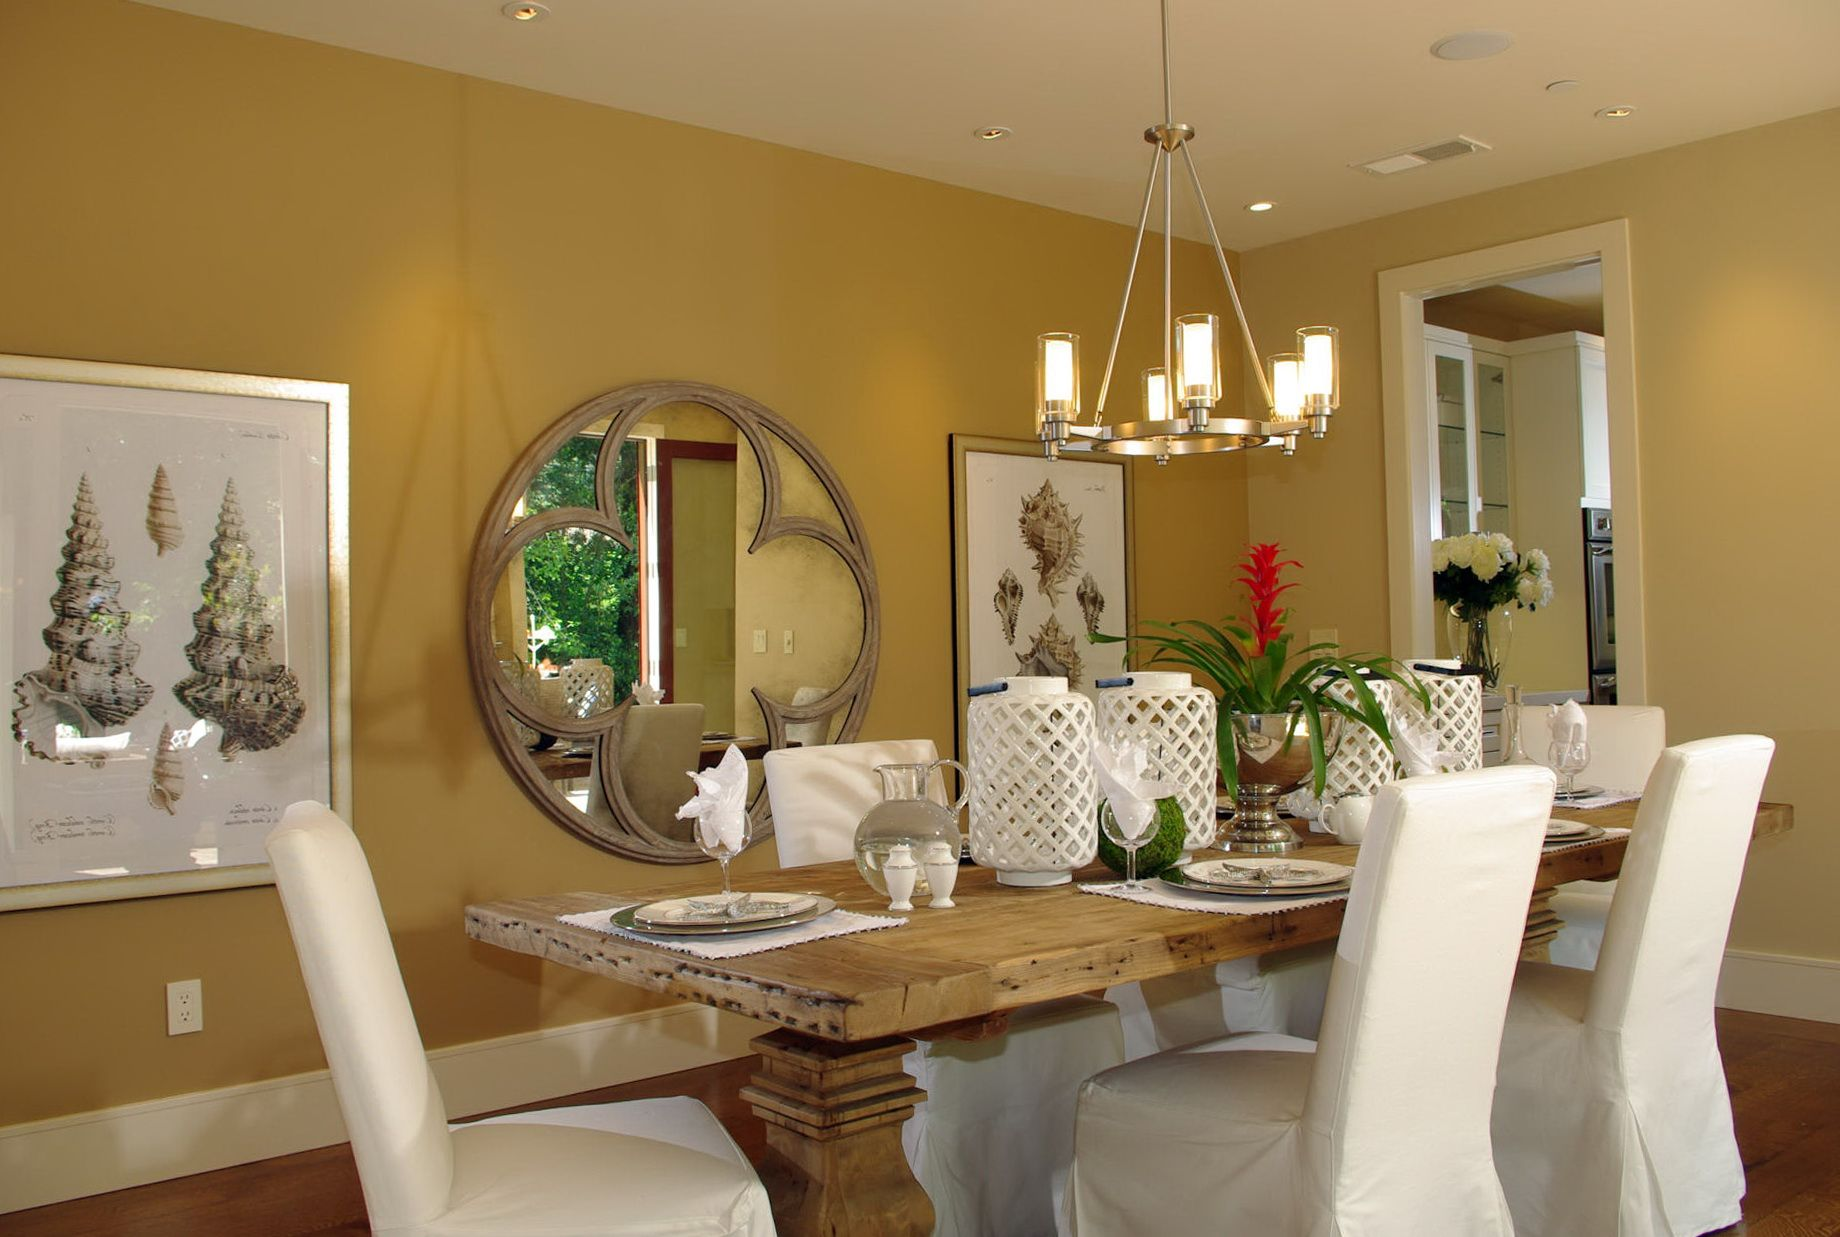 Beautiful Formal Guest Dining Room Decorating Ideas With The Unique Mirror In The Dining Room Inspiration